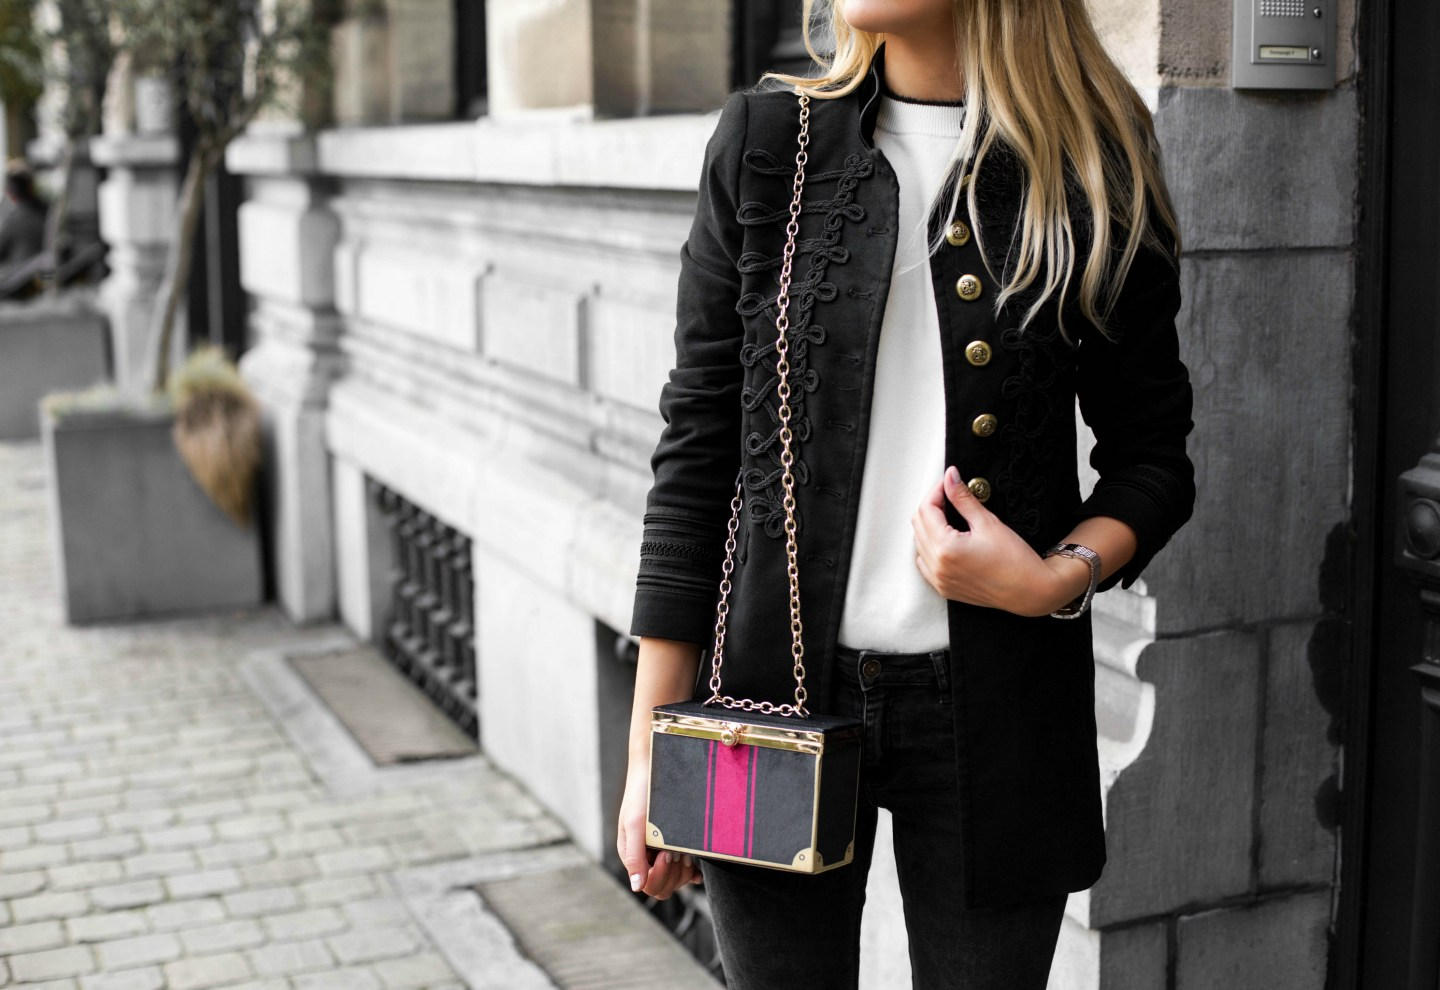 Make it monochrome - Outfit of the day